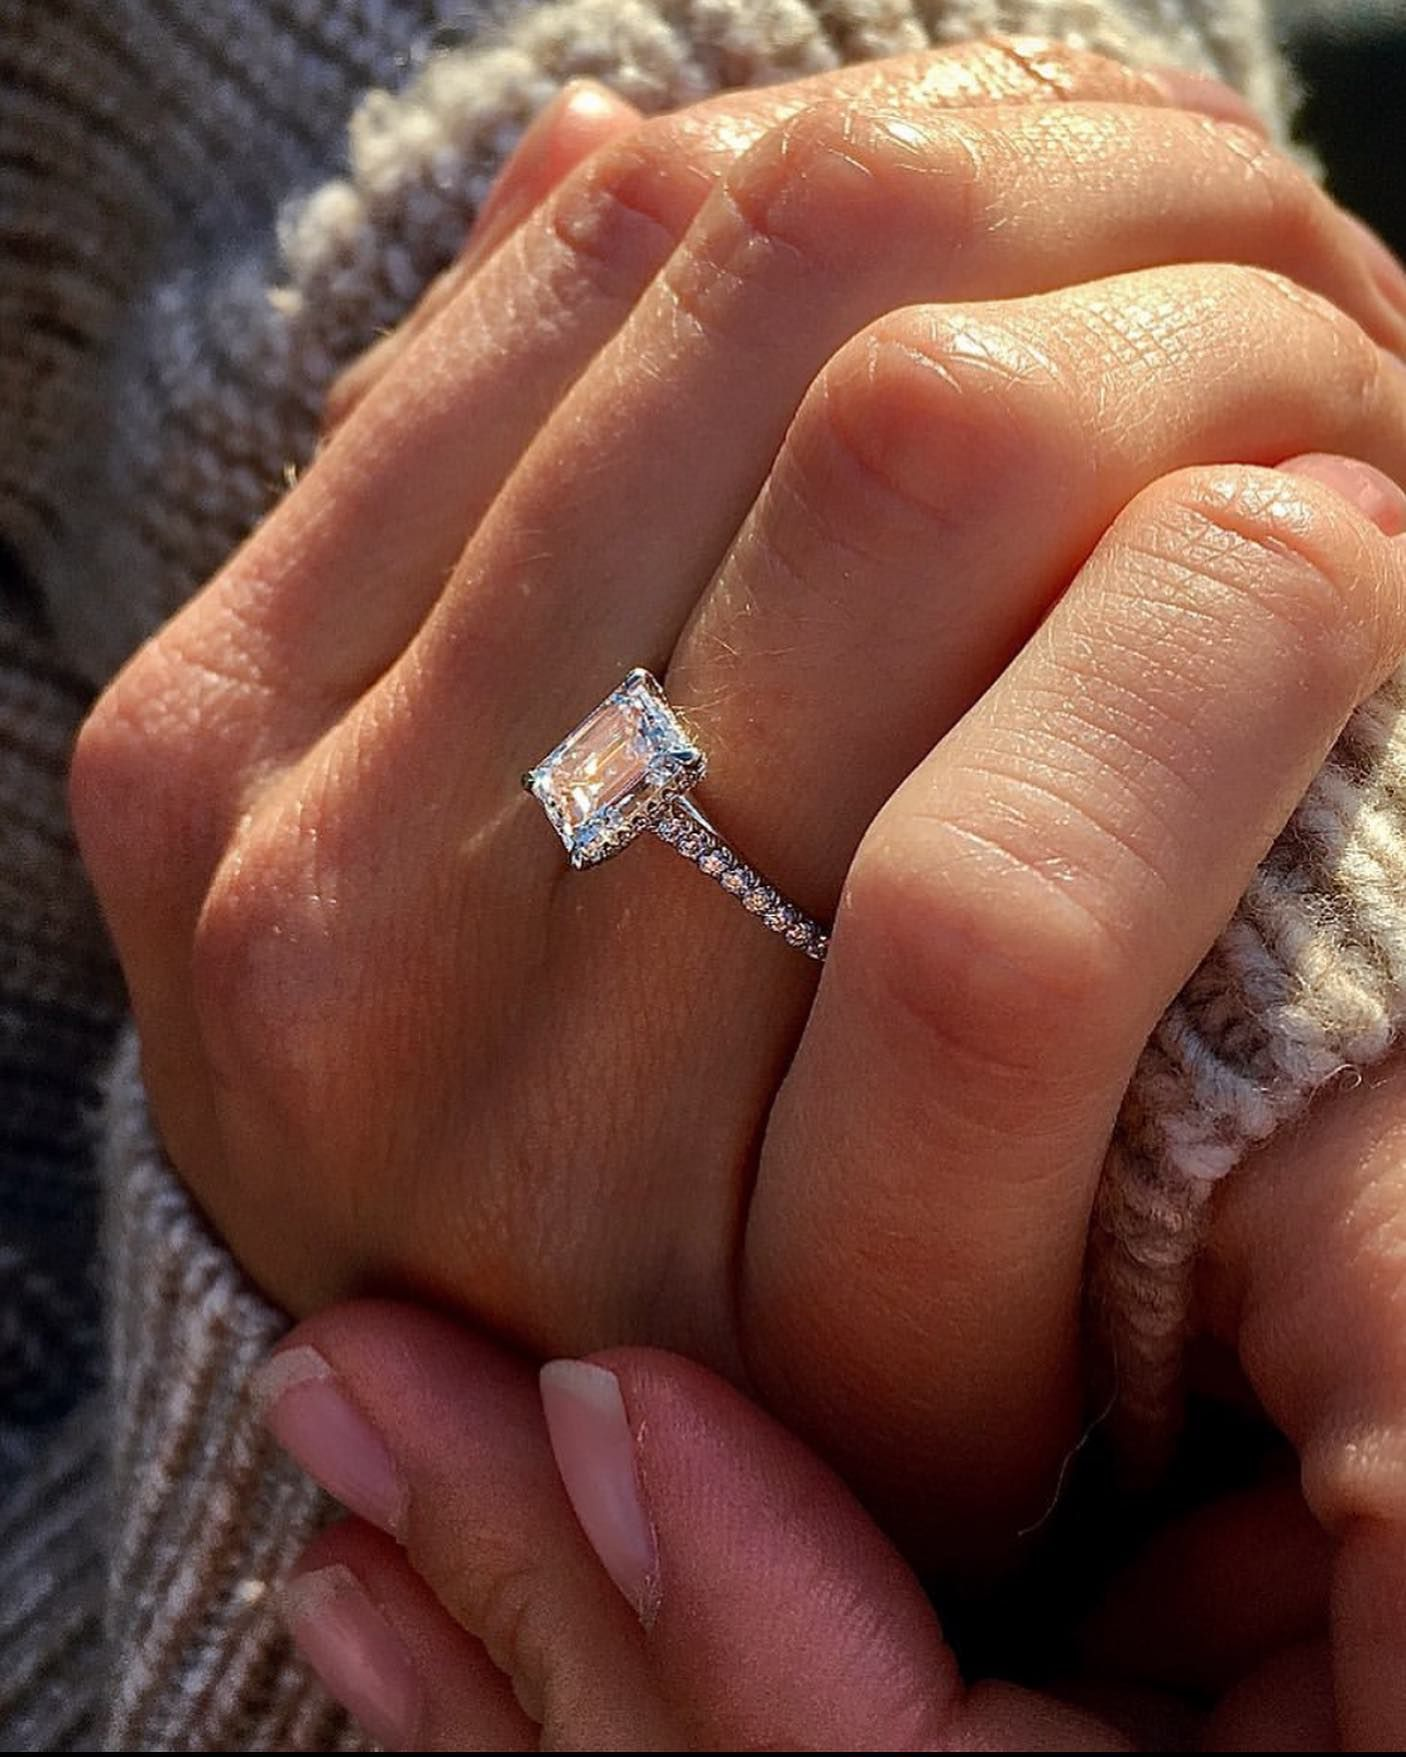 Details about  /2.00 CT Near Colorless Forever Moissanite Engagement Ring 925 Sterling Silver